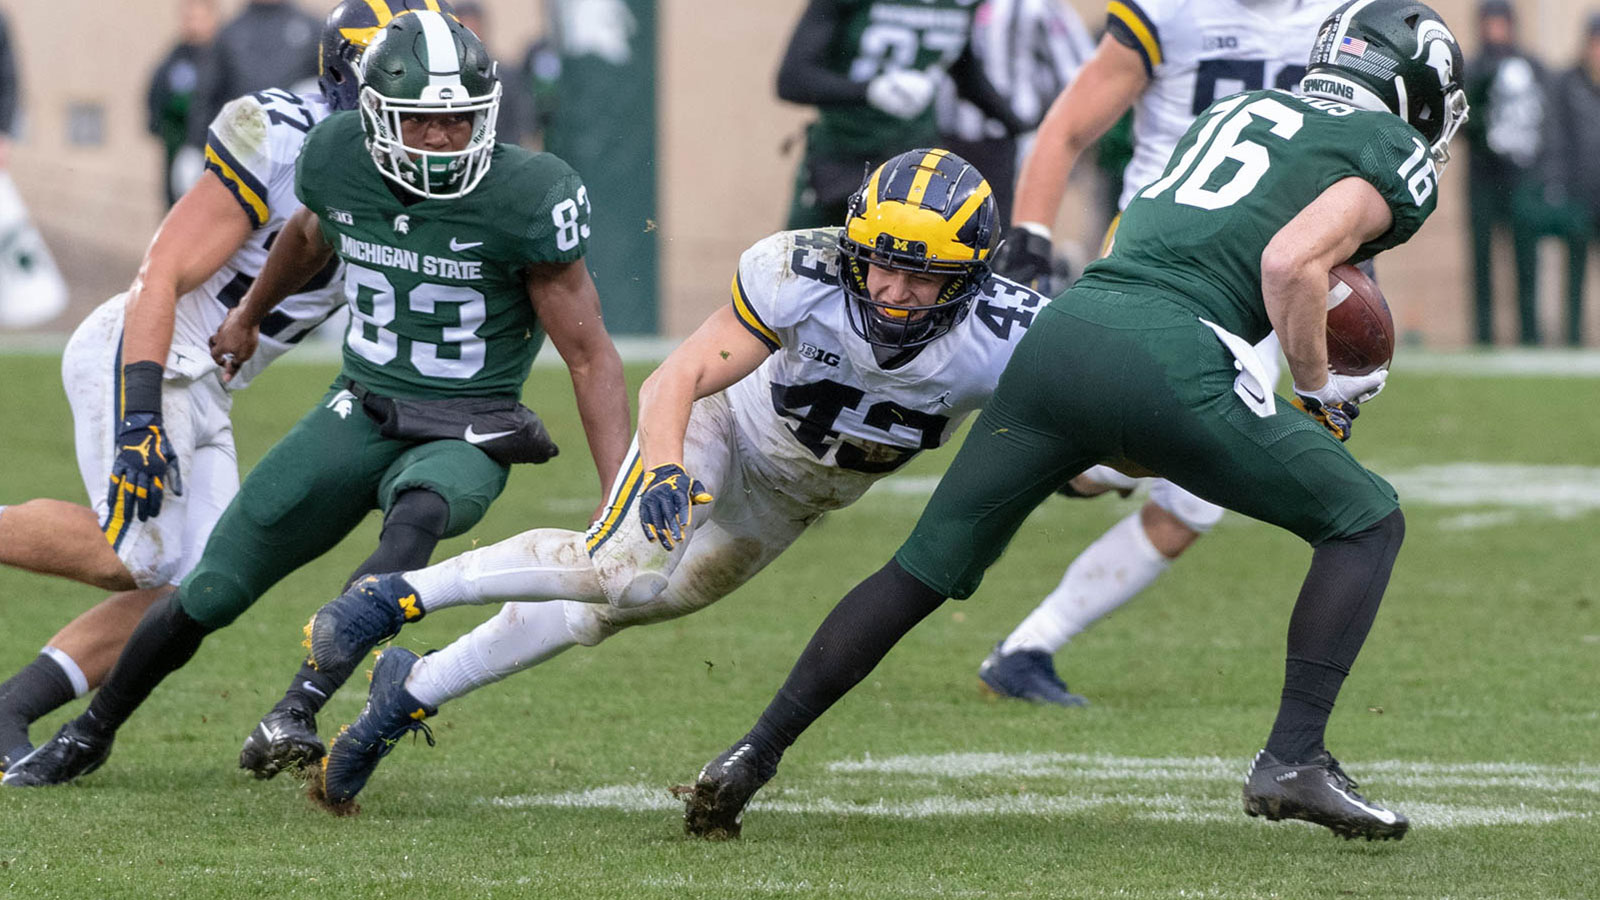 Jake McCurry - Football - University of Michigan Athletics 3a5fbe203